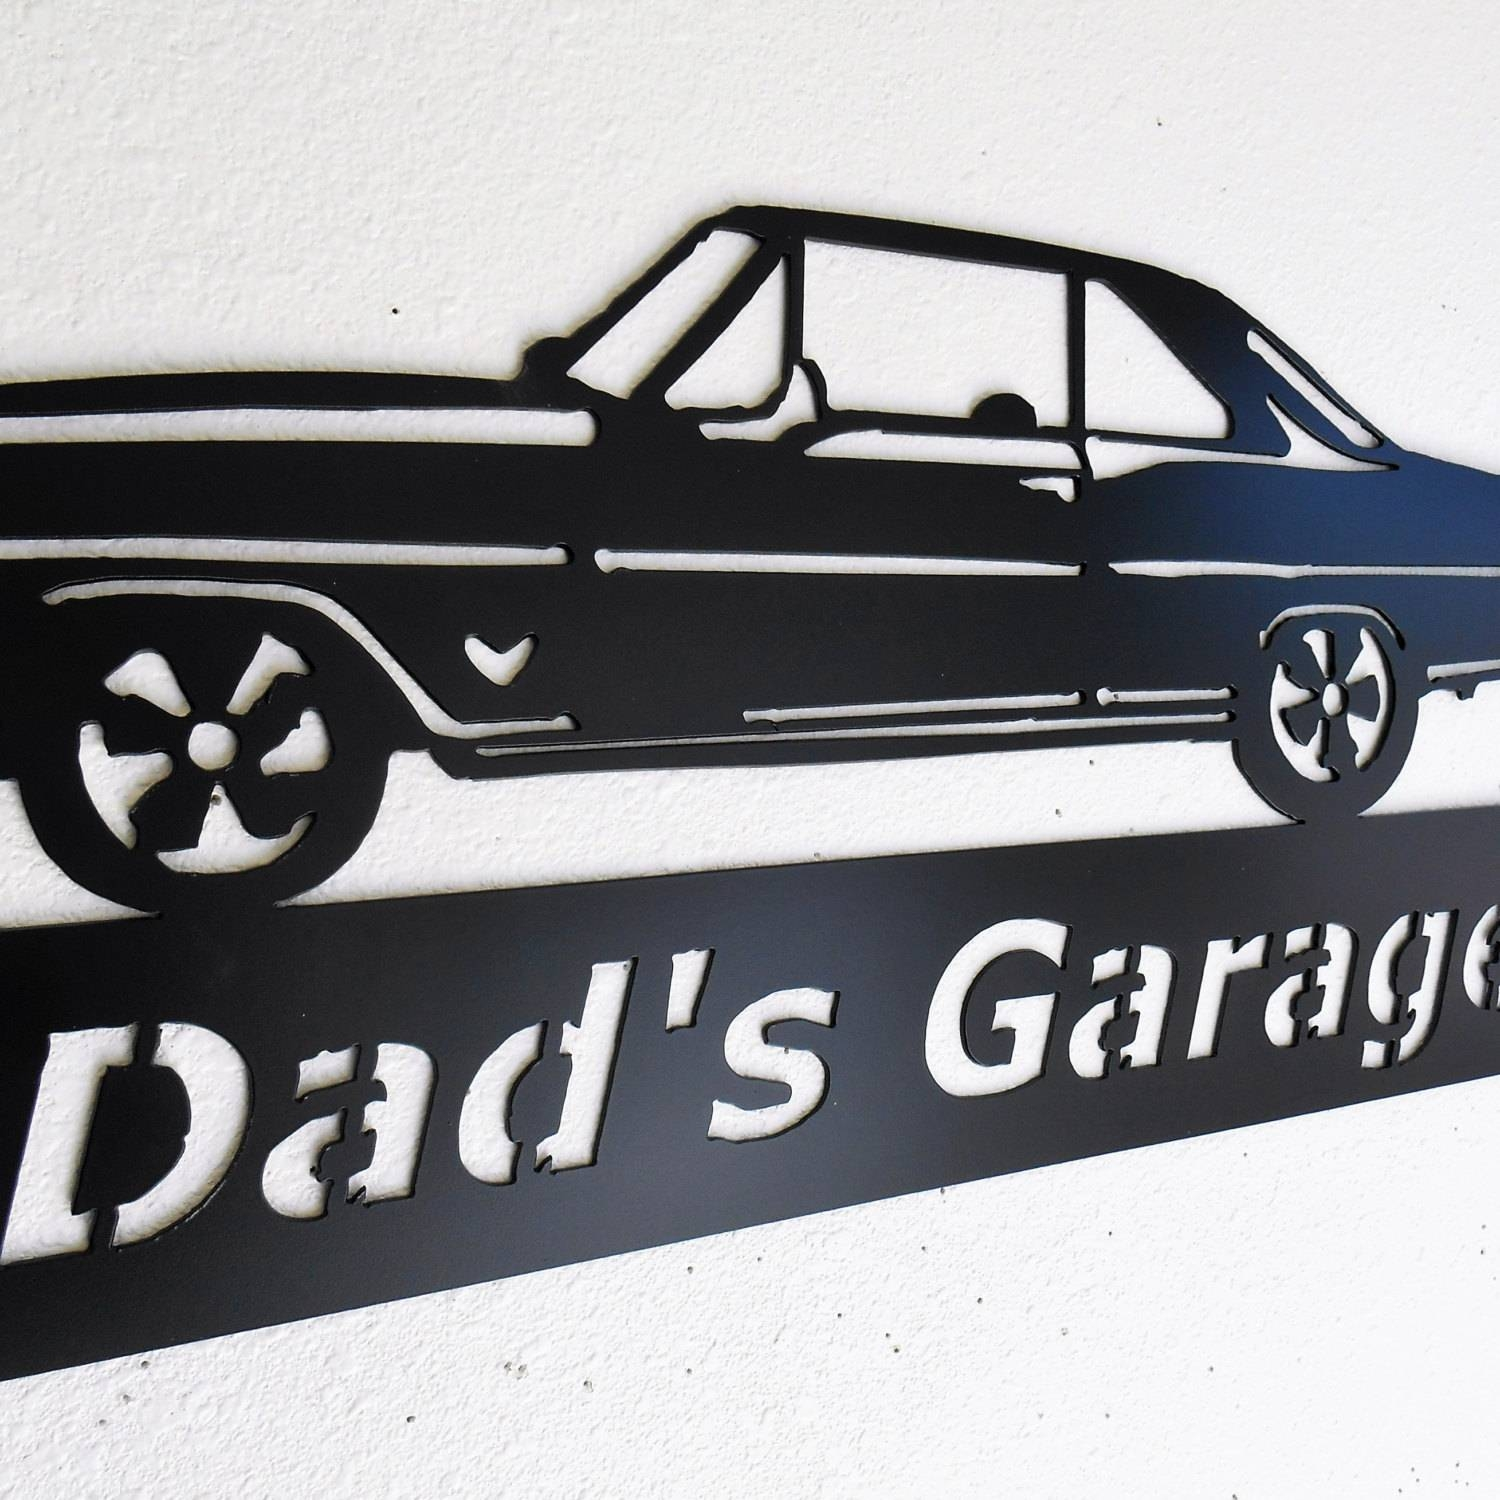 Mesmerizing Wall Decor Man Cave Garage Wall Garage Door Wall Art Pertaining To Most Up To Date Car Metal Wall Art (View 9 of 20)